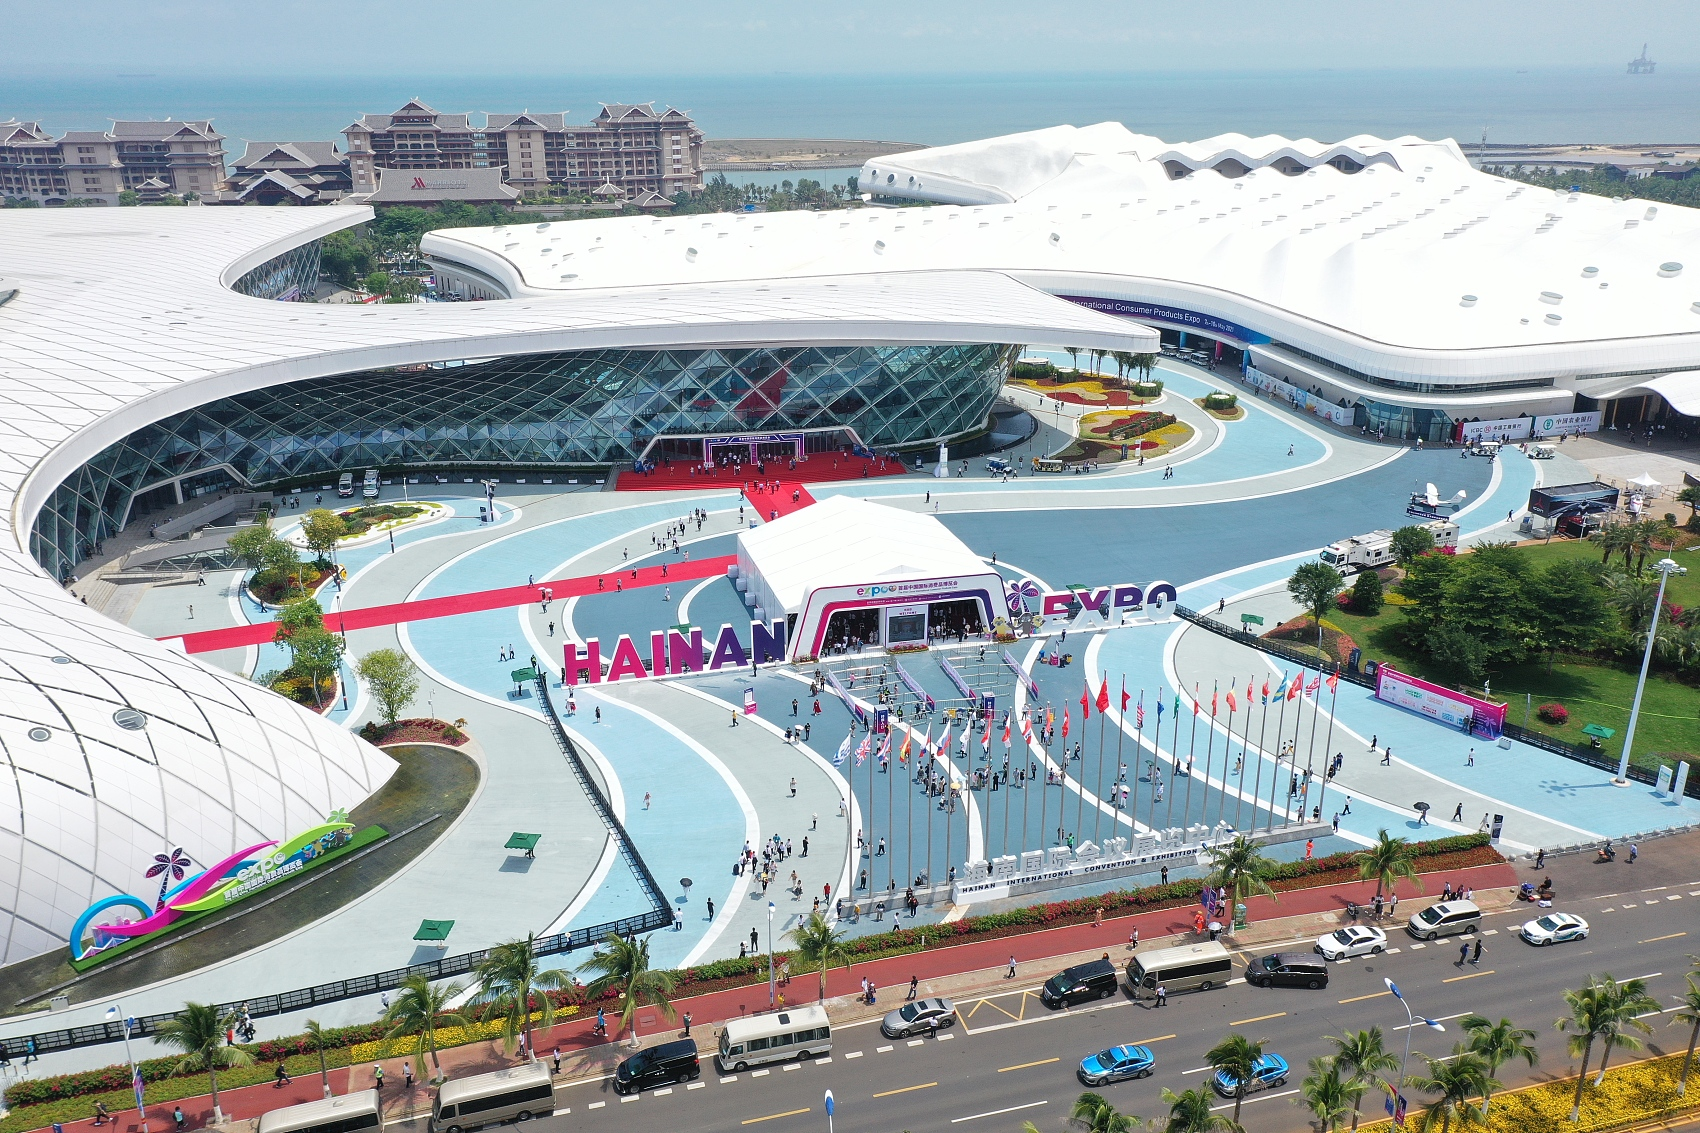 In pics: China International Consumer Products Expo begins in Hainan